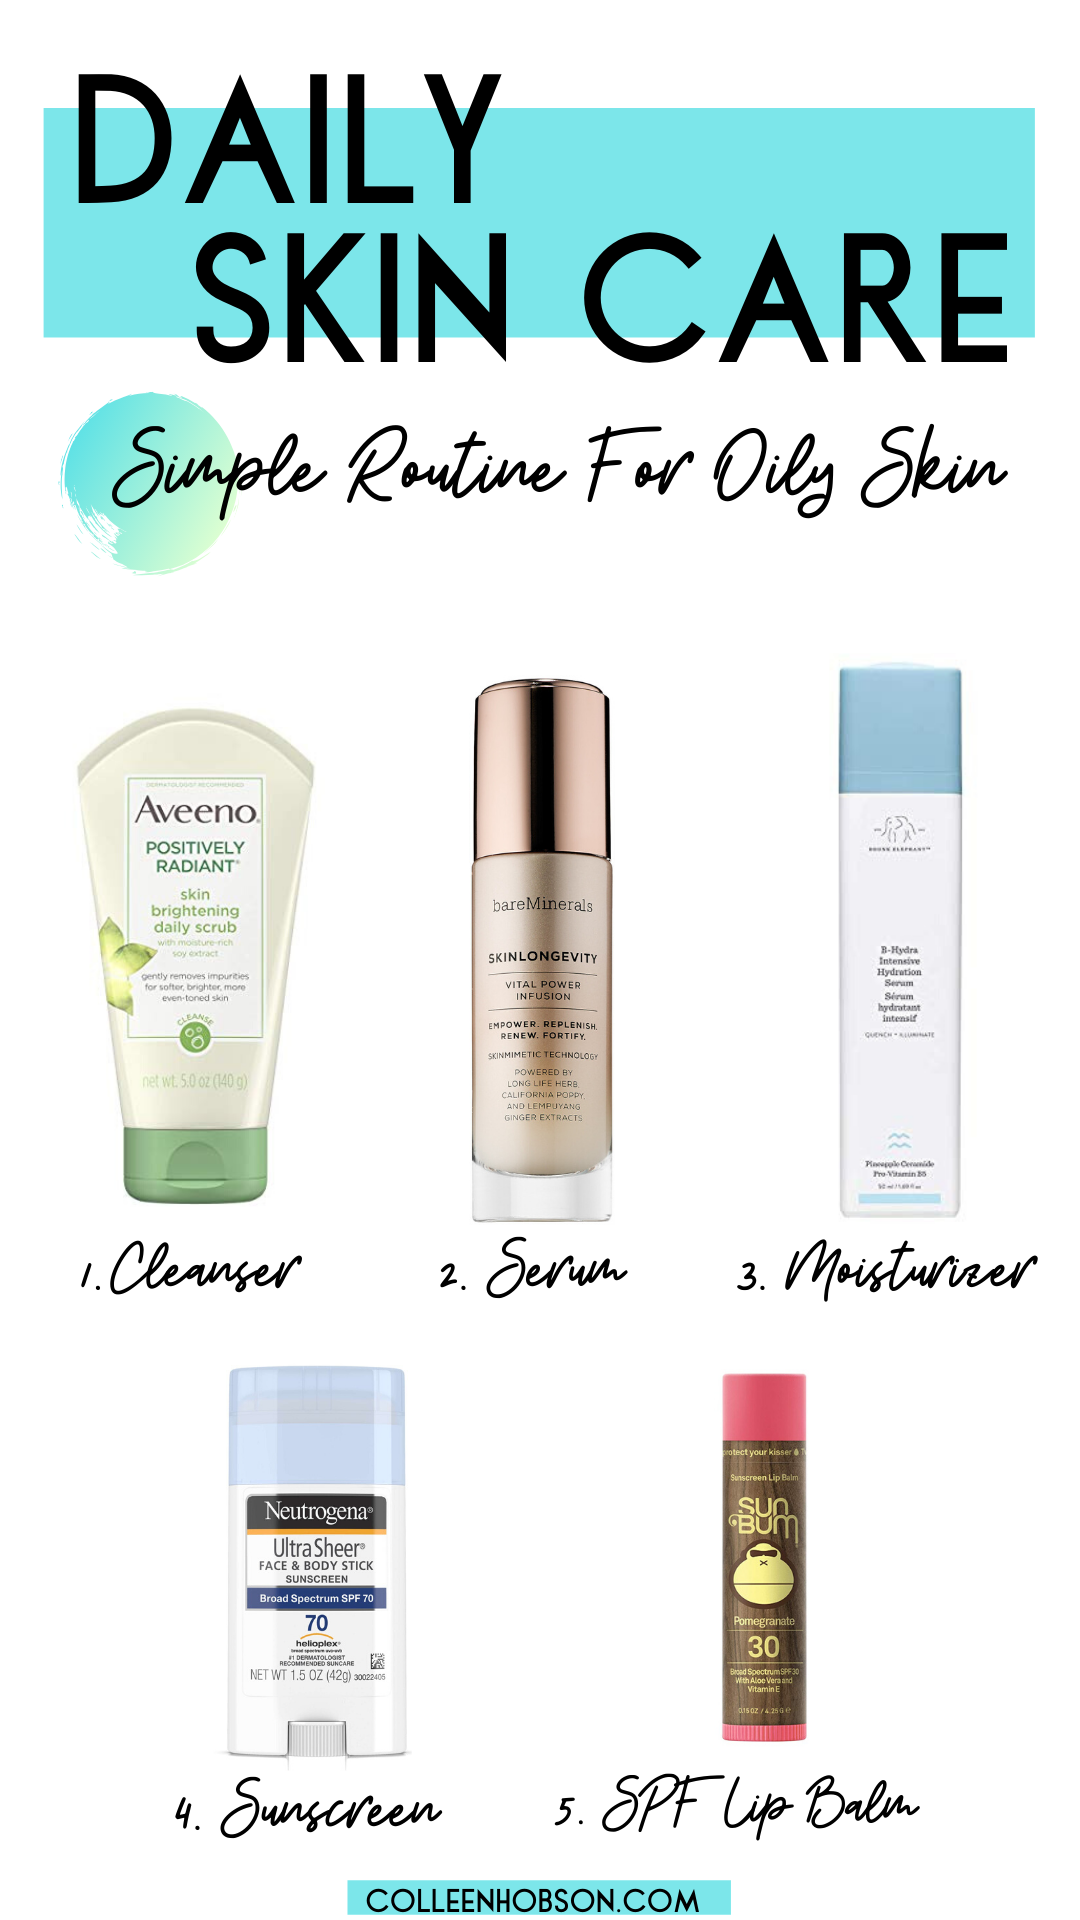 Daily Skincare Routine For Oily Skin Colleen Hobson Oily Skin Treating Oily Skin Daily Skin Care